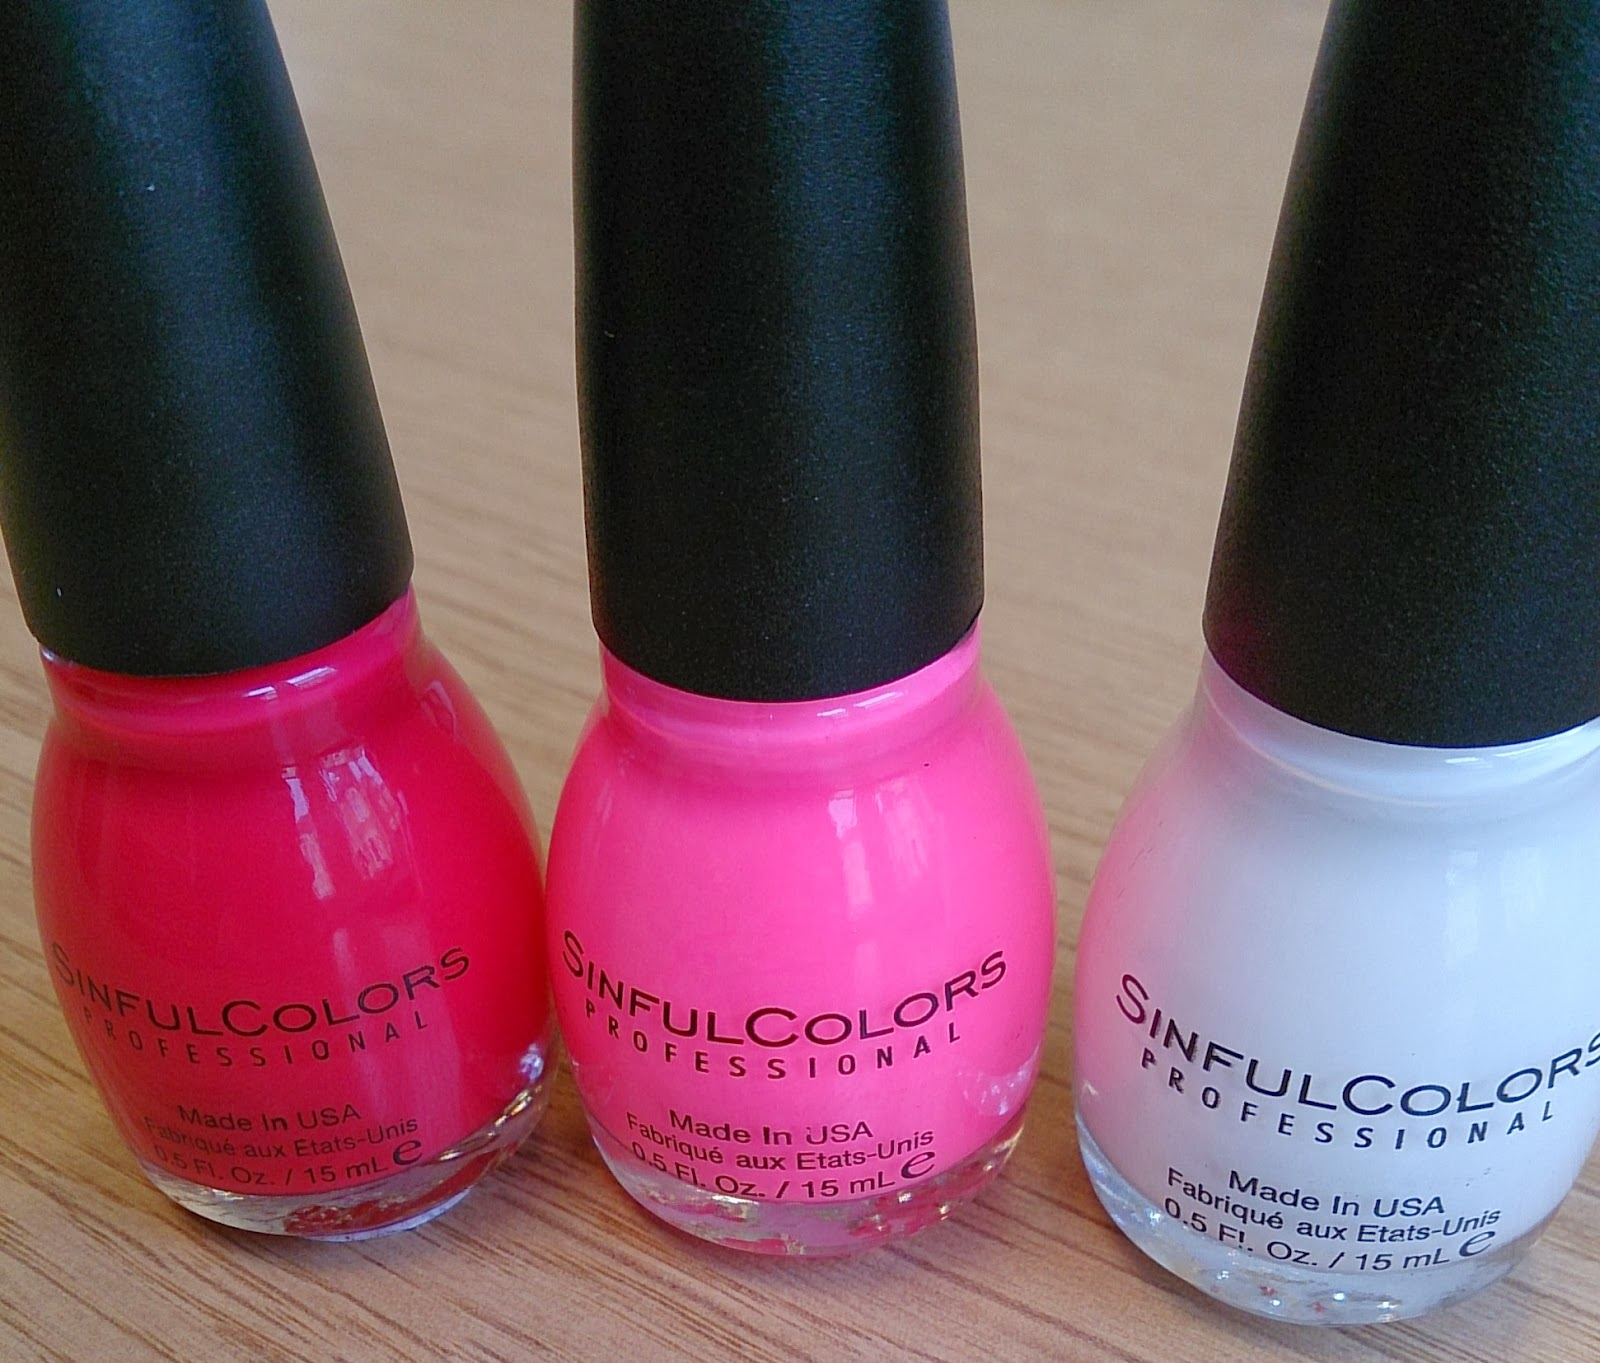 sinful colors nail polish polishes varnish varnishes snow me white pink fluorescent 24/7 folly red haul